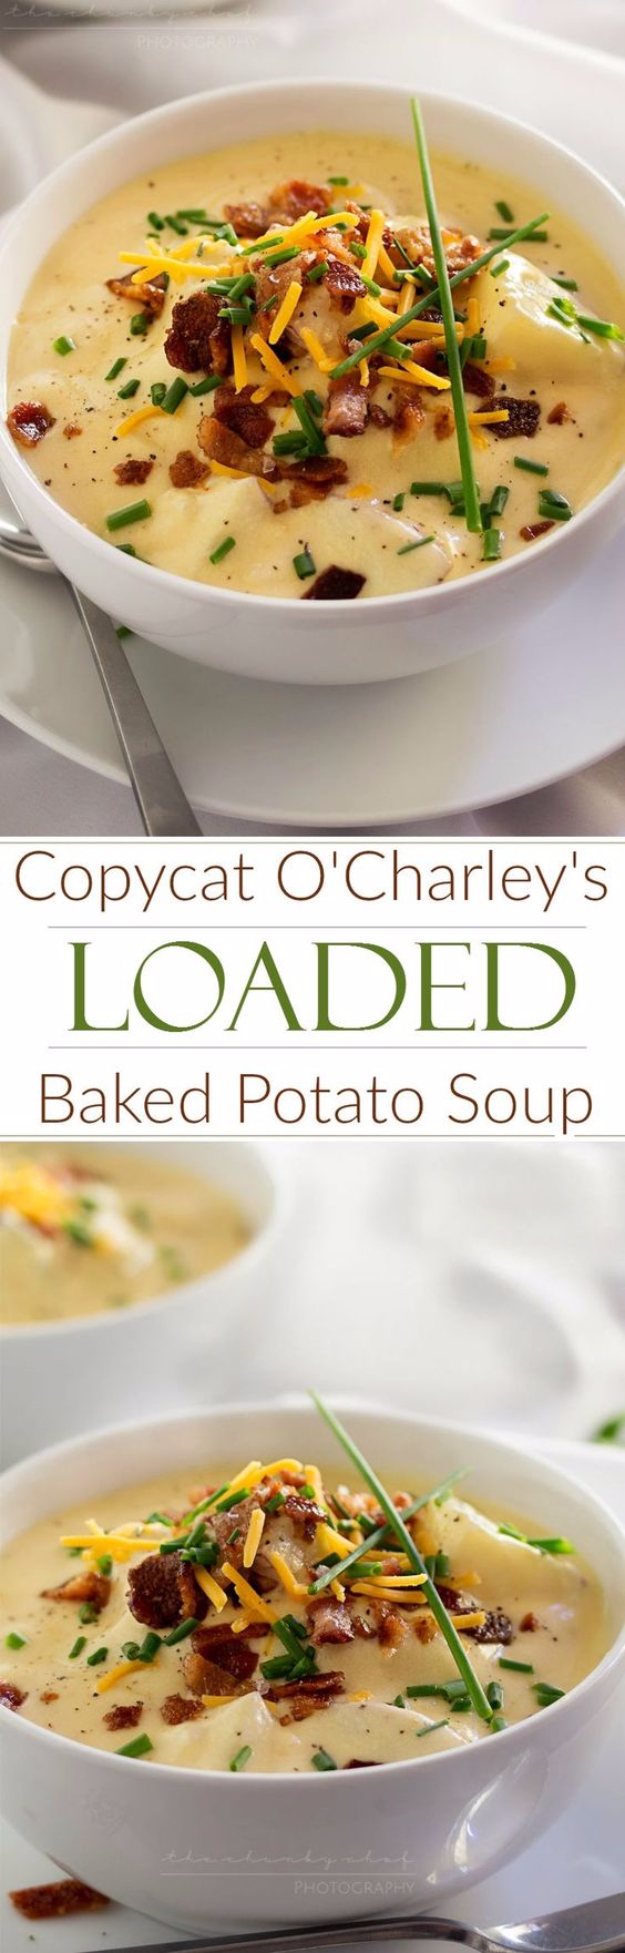 Best Copycat Recipes From Top Restaurants - Copycat O'Charley's Loaded Baked Potato soup - Awesome Recipe Knockoffs and Recipe Ideas from Chipotle Restaurant, Starbucks, Olive Garden, Cinabbon, Cracker Barrel, Taco Bell, Cheesecake Factory, KFC, Mc Donalds, Red Lobster, Panda Express #recipes #copycat #dinnerideas